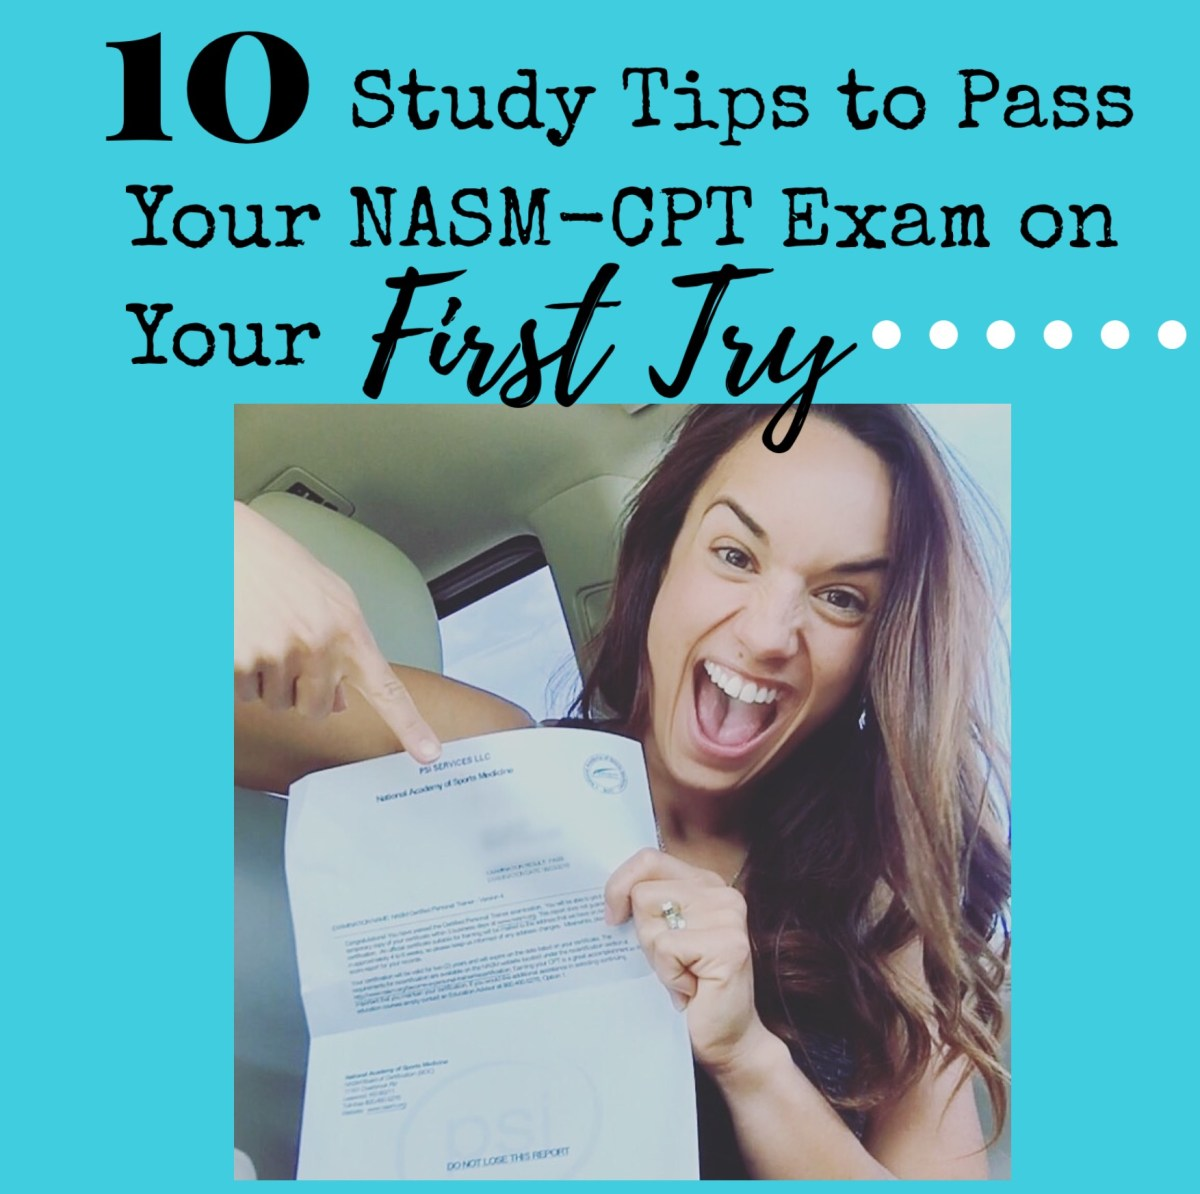 10 Study Tips to Pass Your NASM CPT Exam on Your First Try